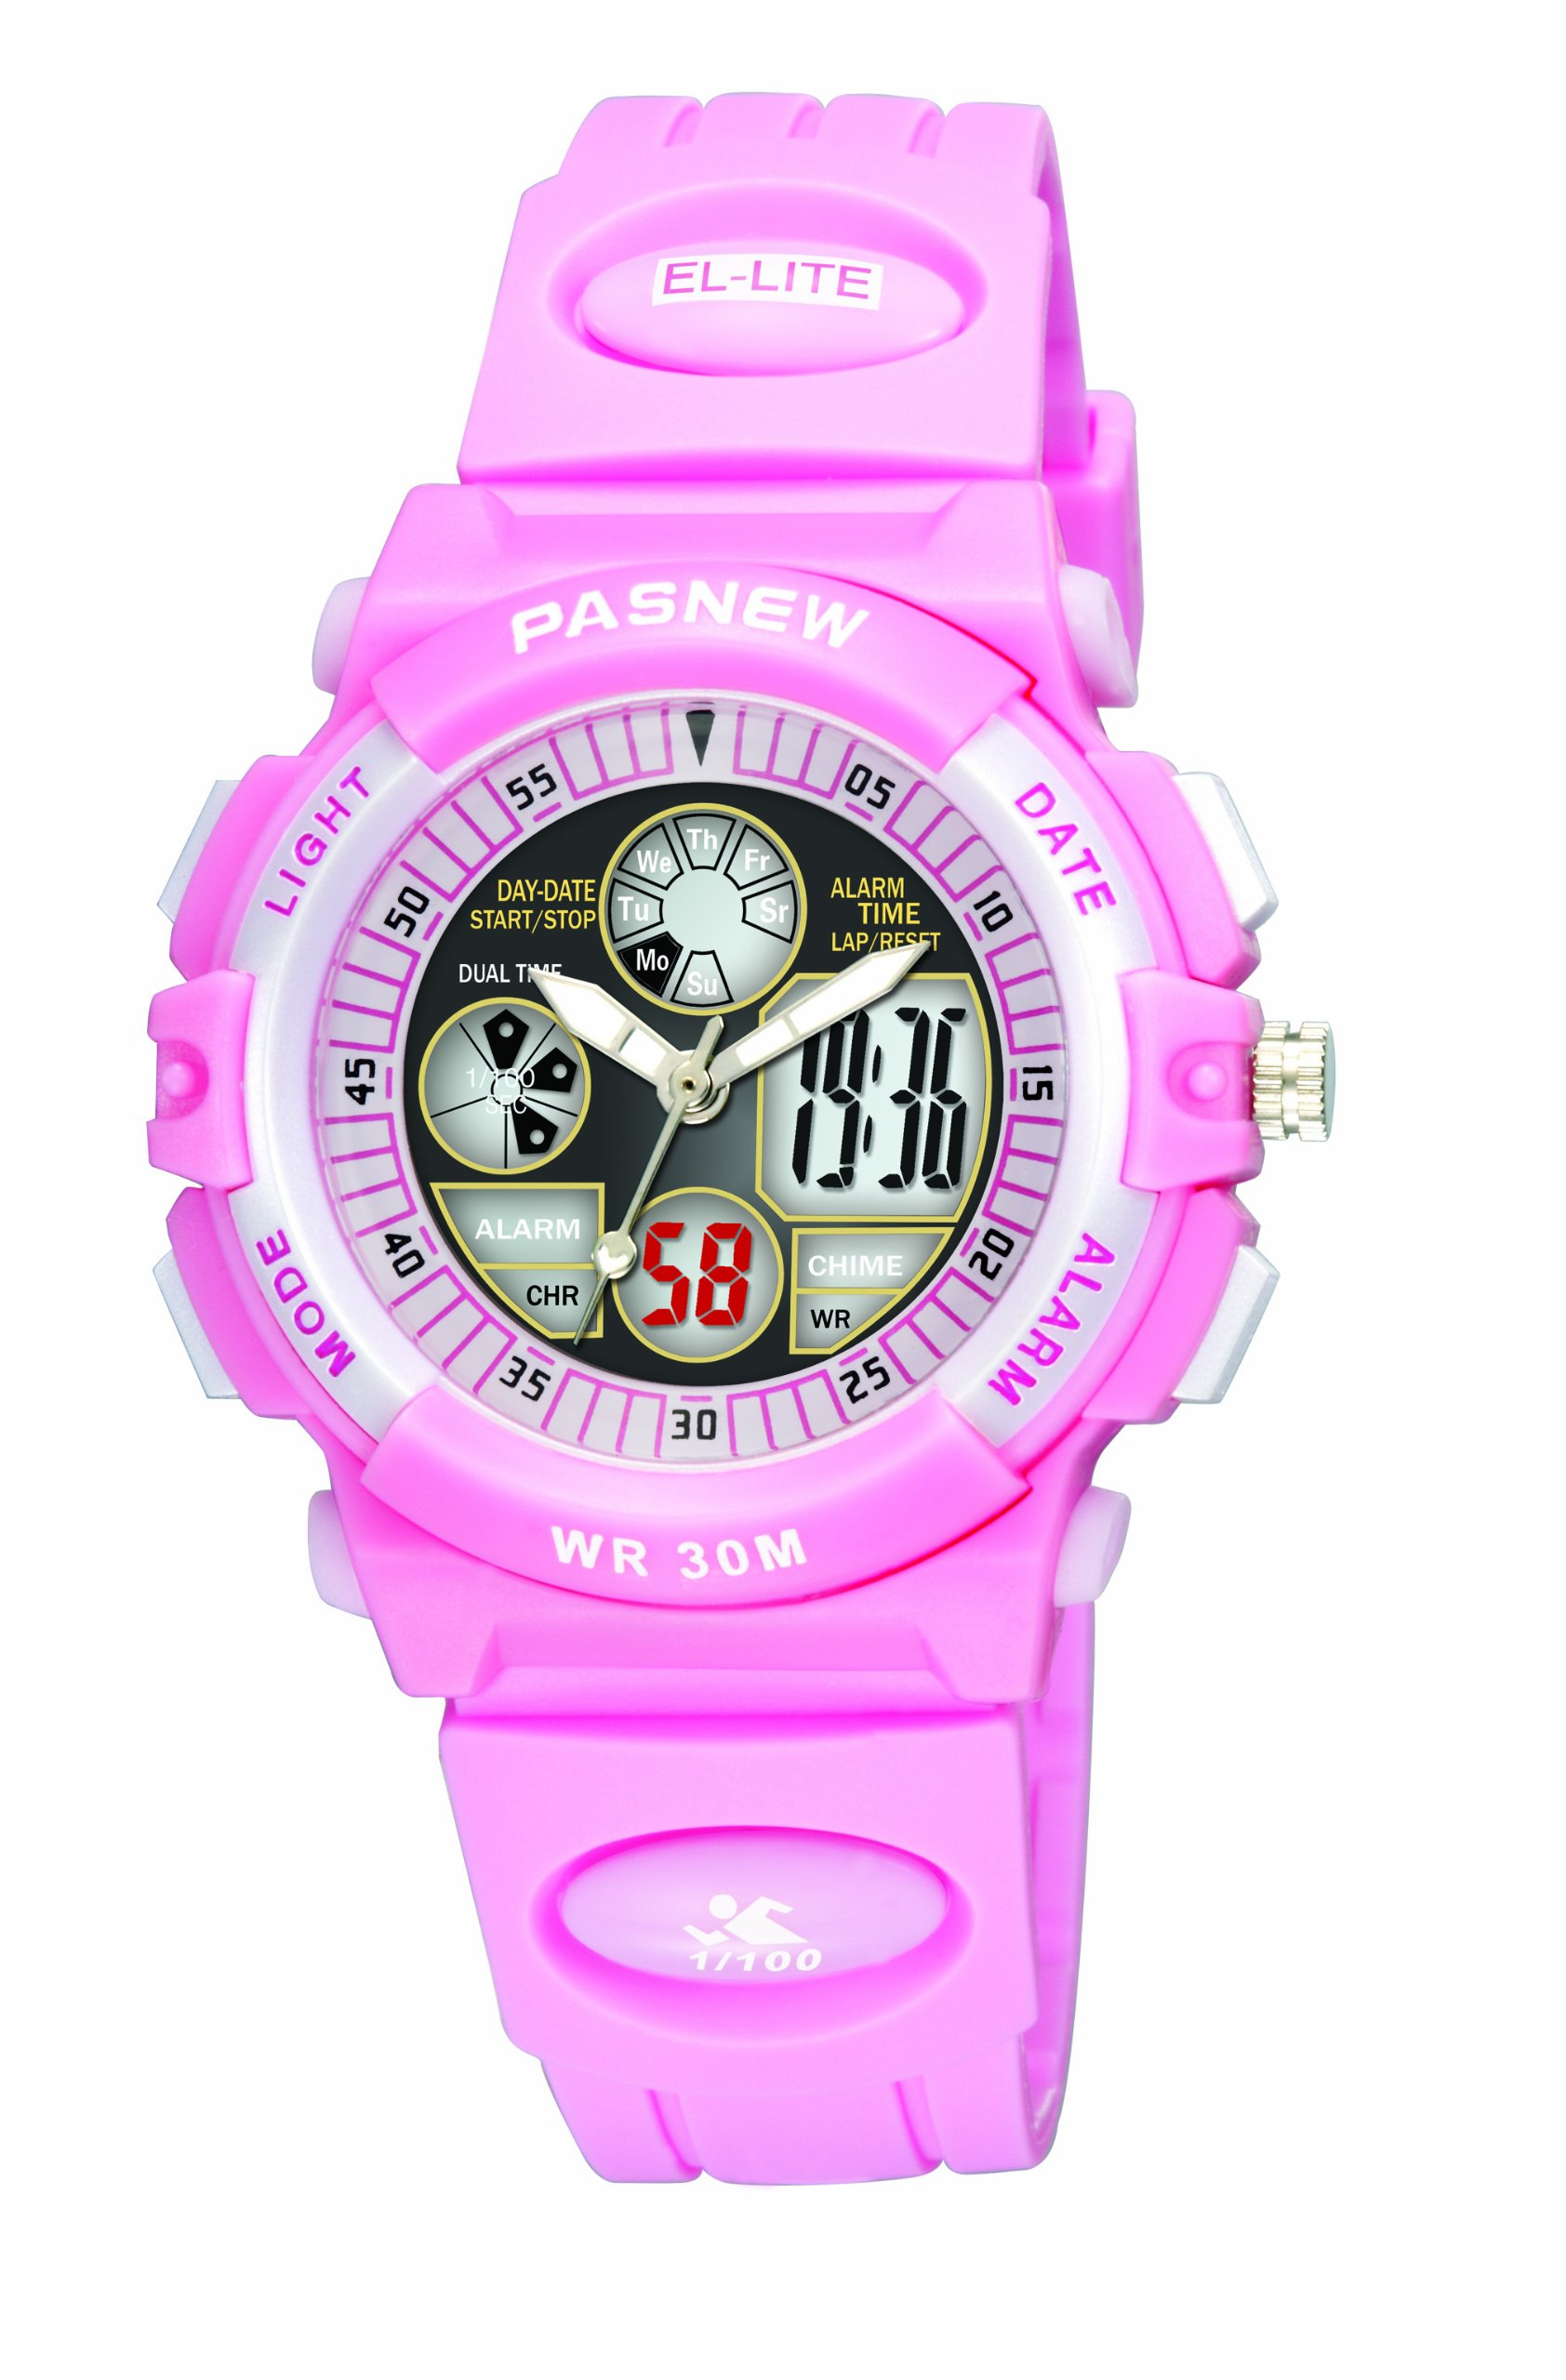 30m Water-proof Digital-analog Boys Girls Sport Digital Watch with Alarm Stopwatch Chronograph (Child) 6 Colors (Pink)